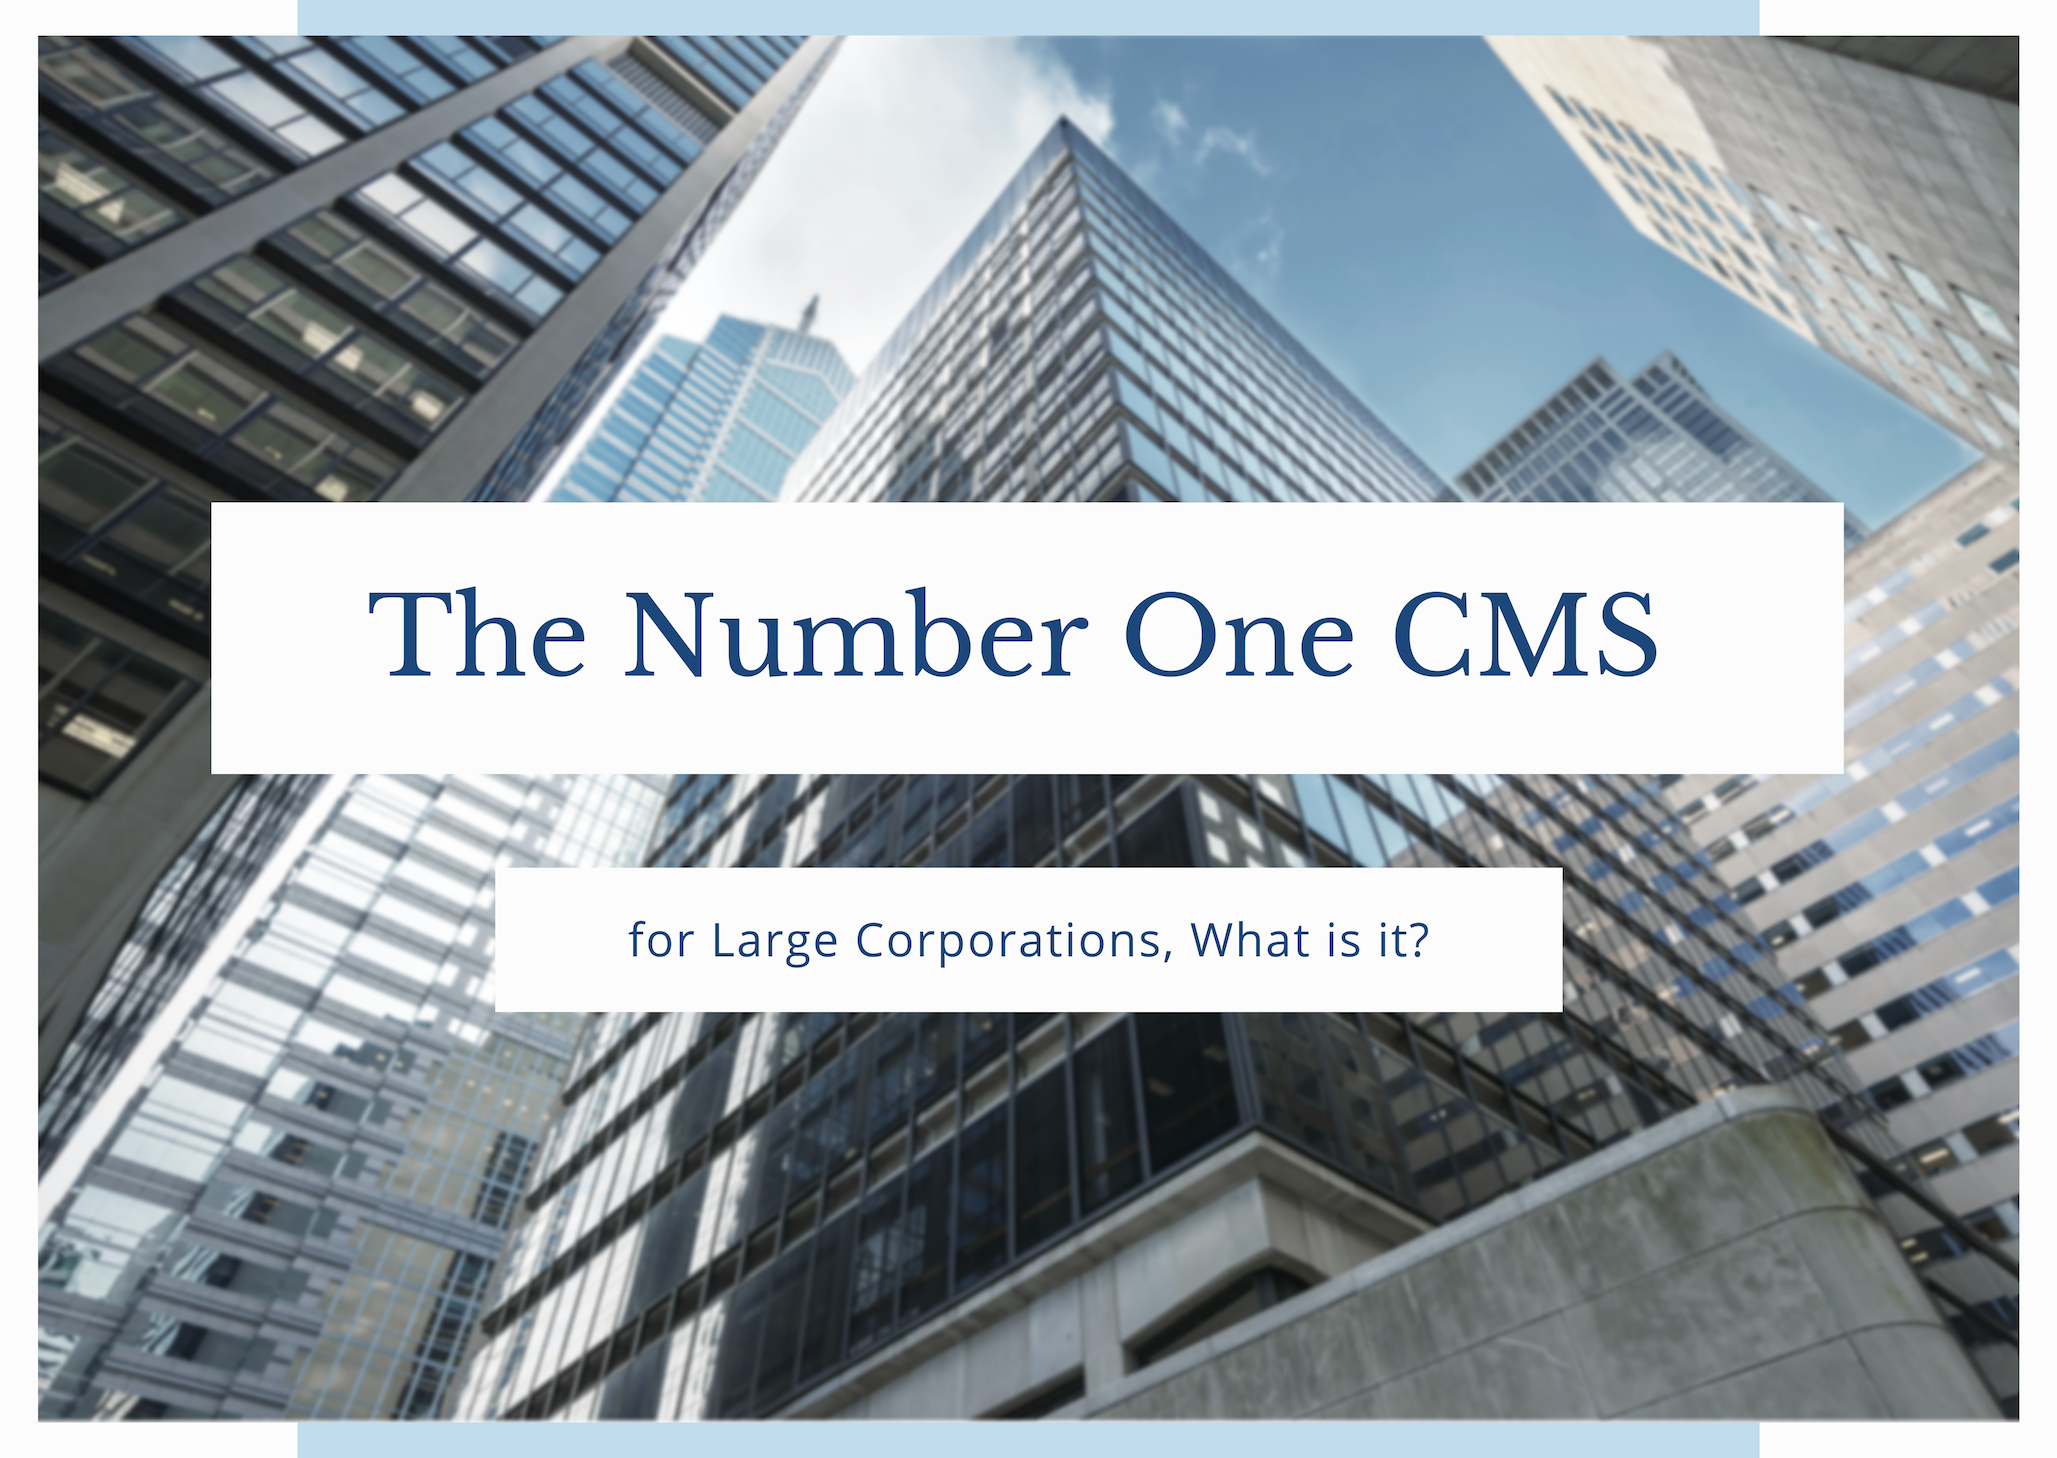 The Number 1 CMS for Large Corporations